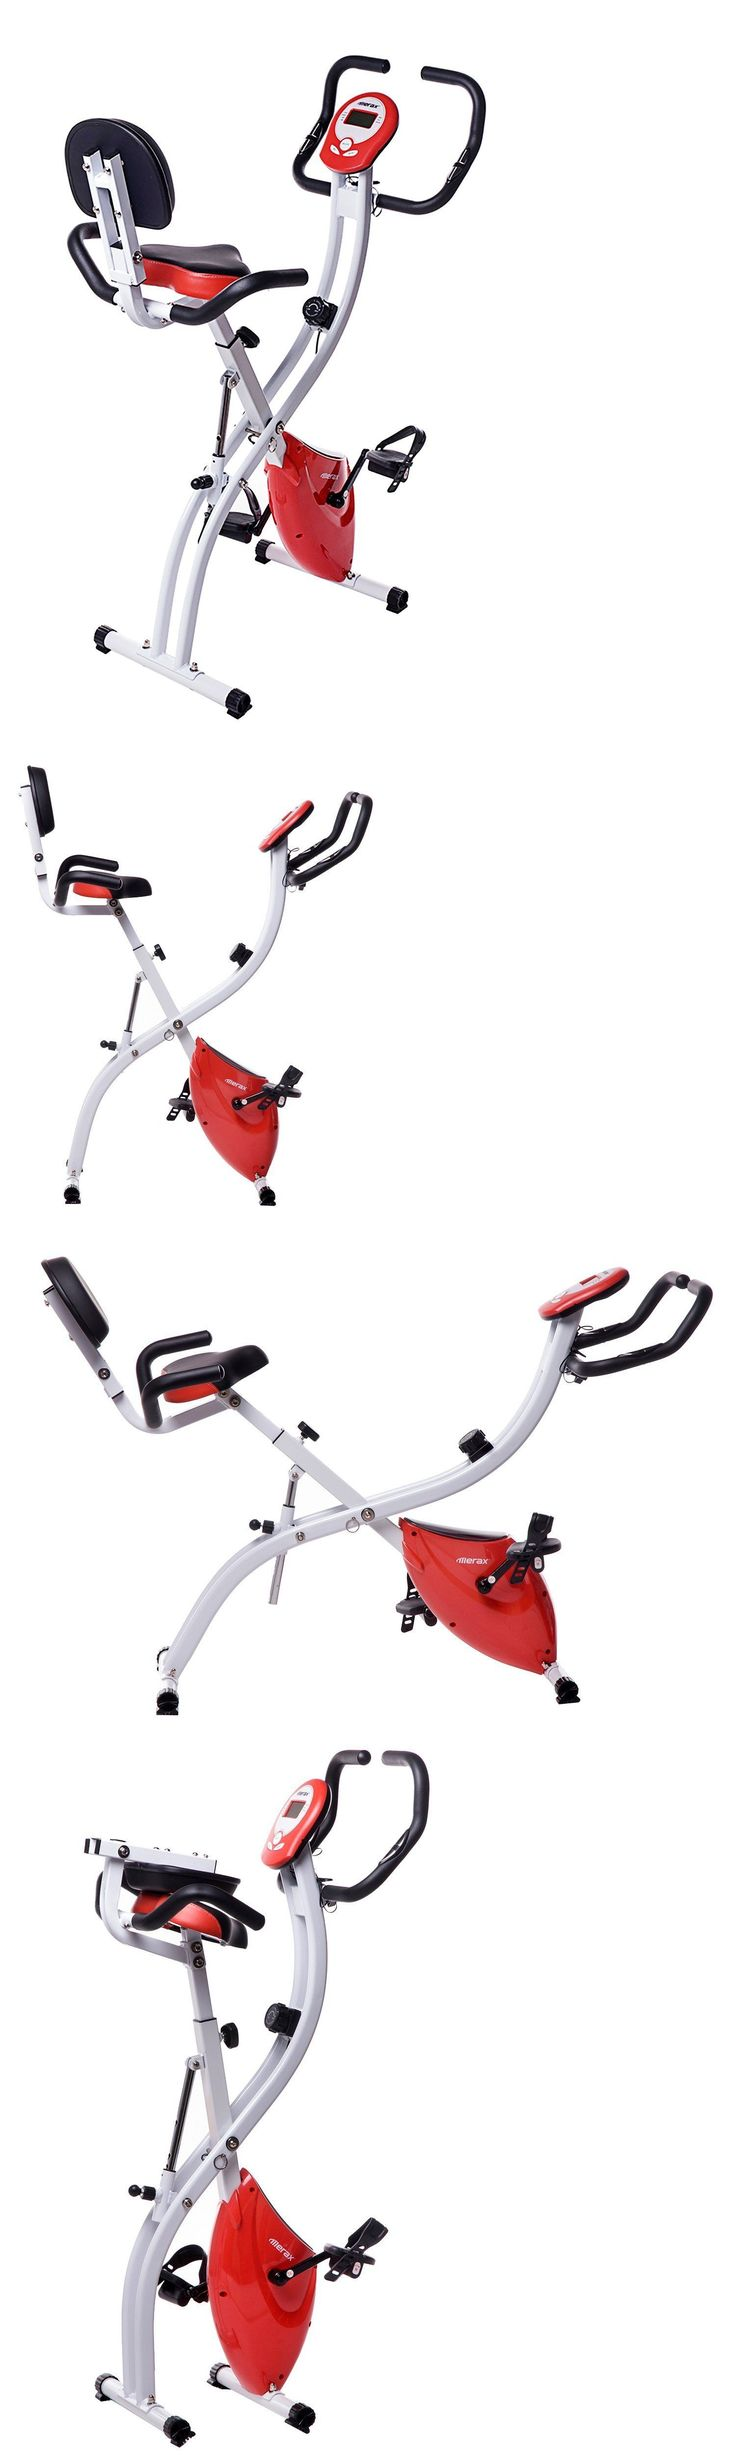 Exercise Bikes 58102: Folding Exercise Bicycle Cycling Magnetic Trainer Fitness Stationary Machine -> BUY IT NOW ONLY: $94.99 on eBay!